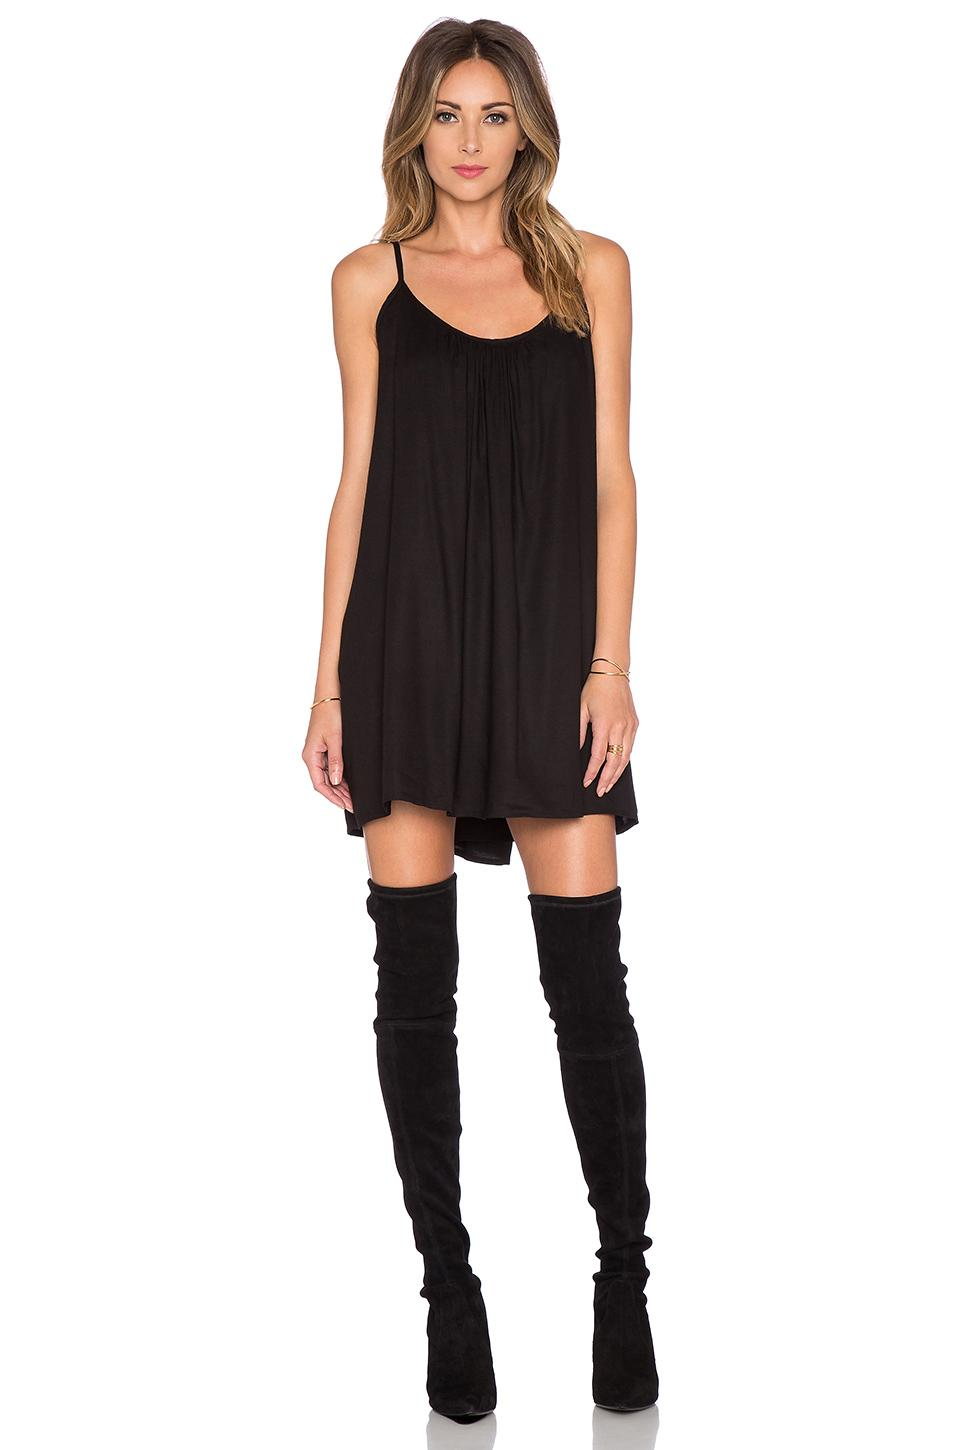 Lovers Friends X Revolve Fly Away Mini Dress In Black Lyst